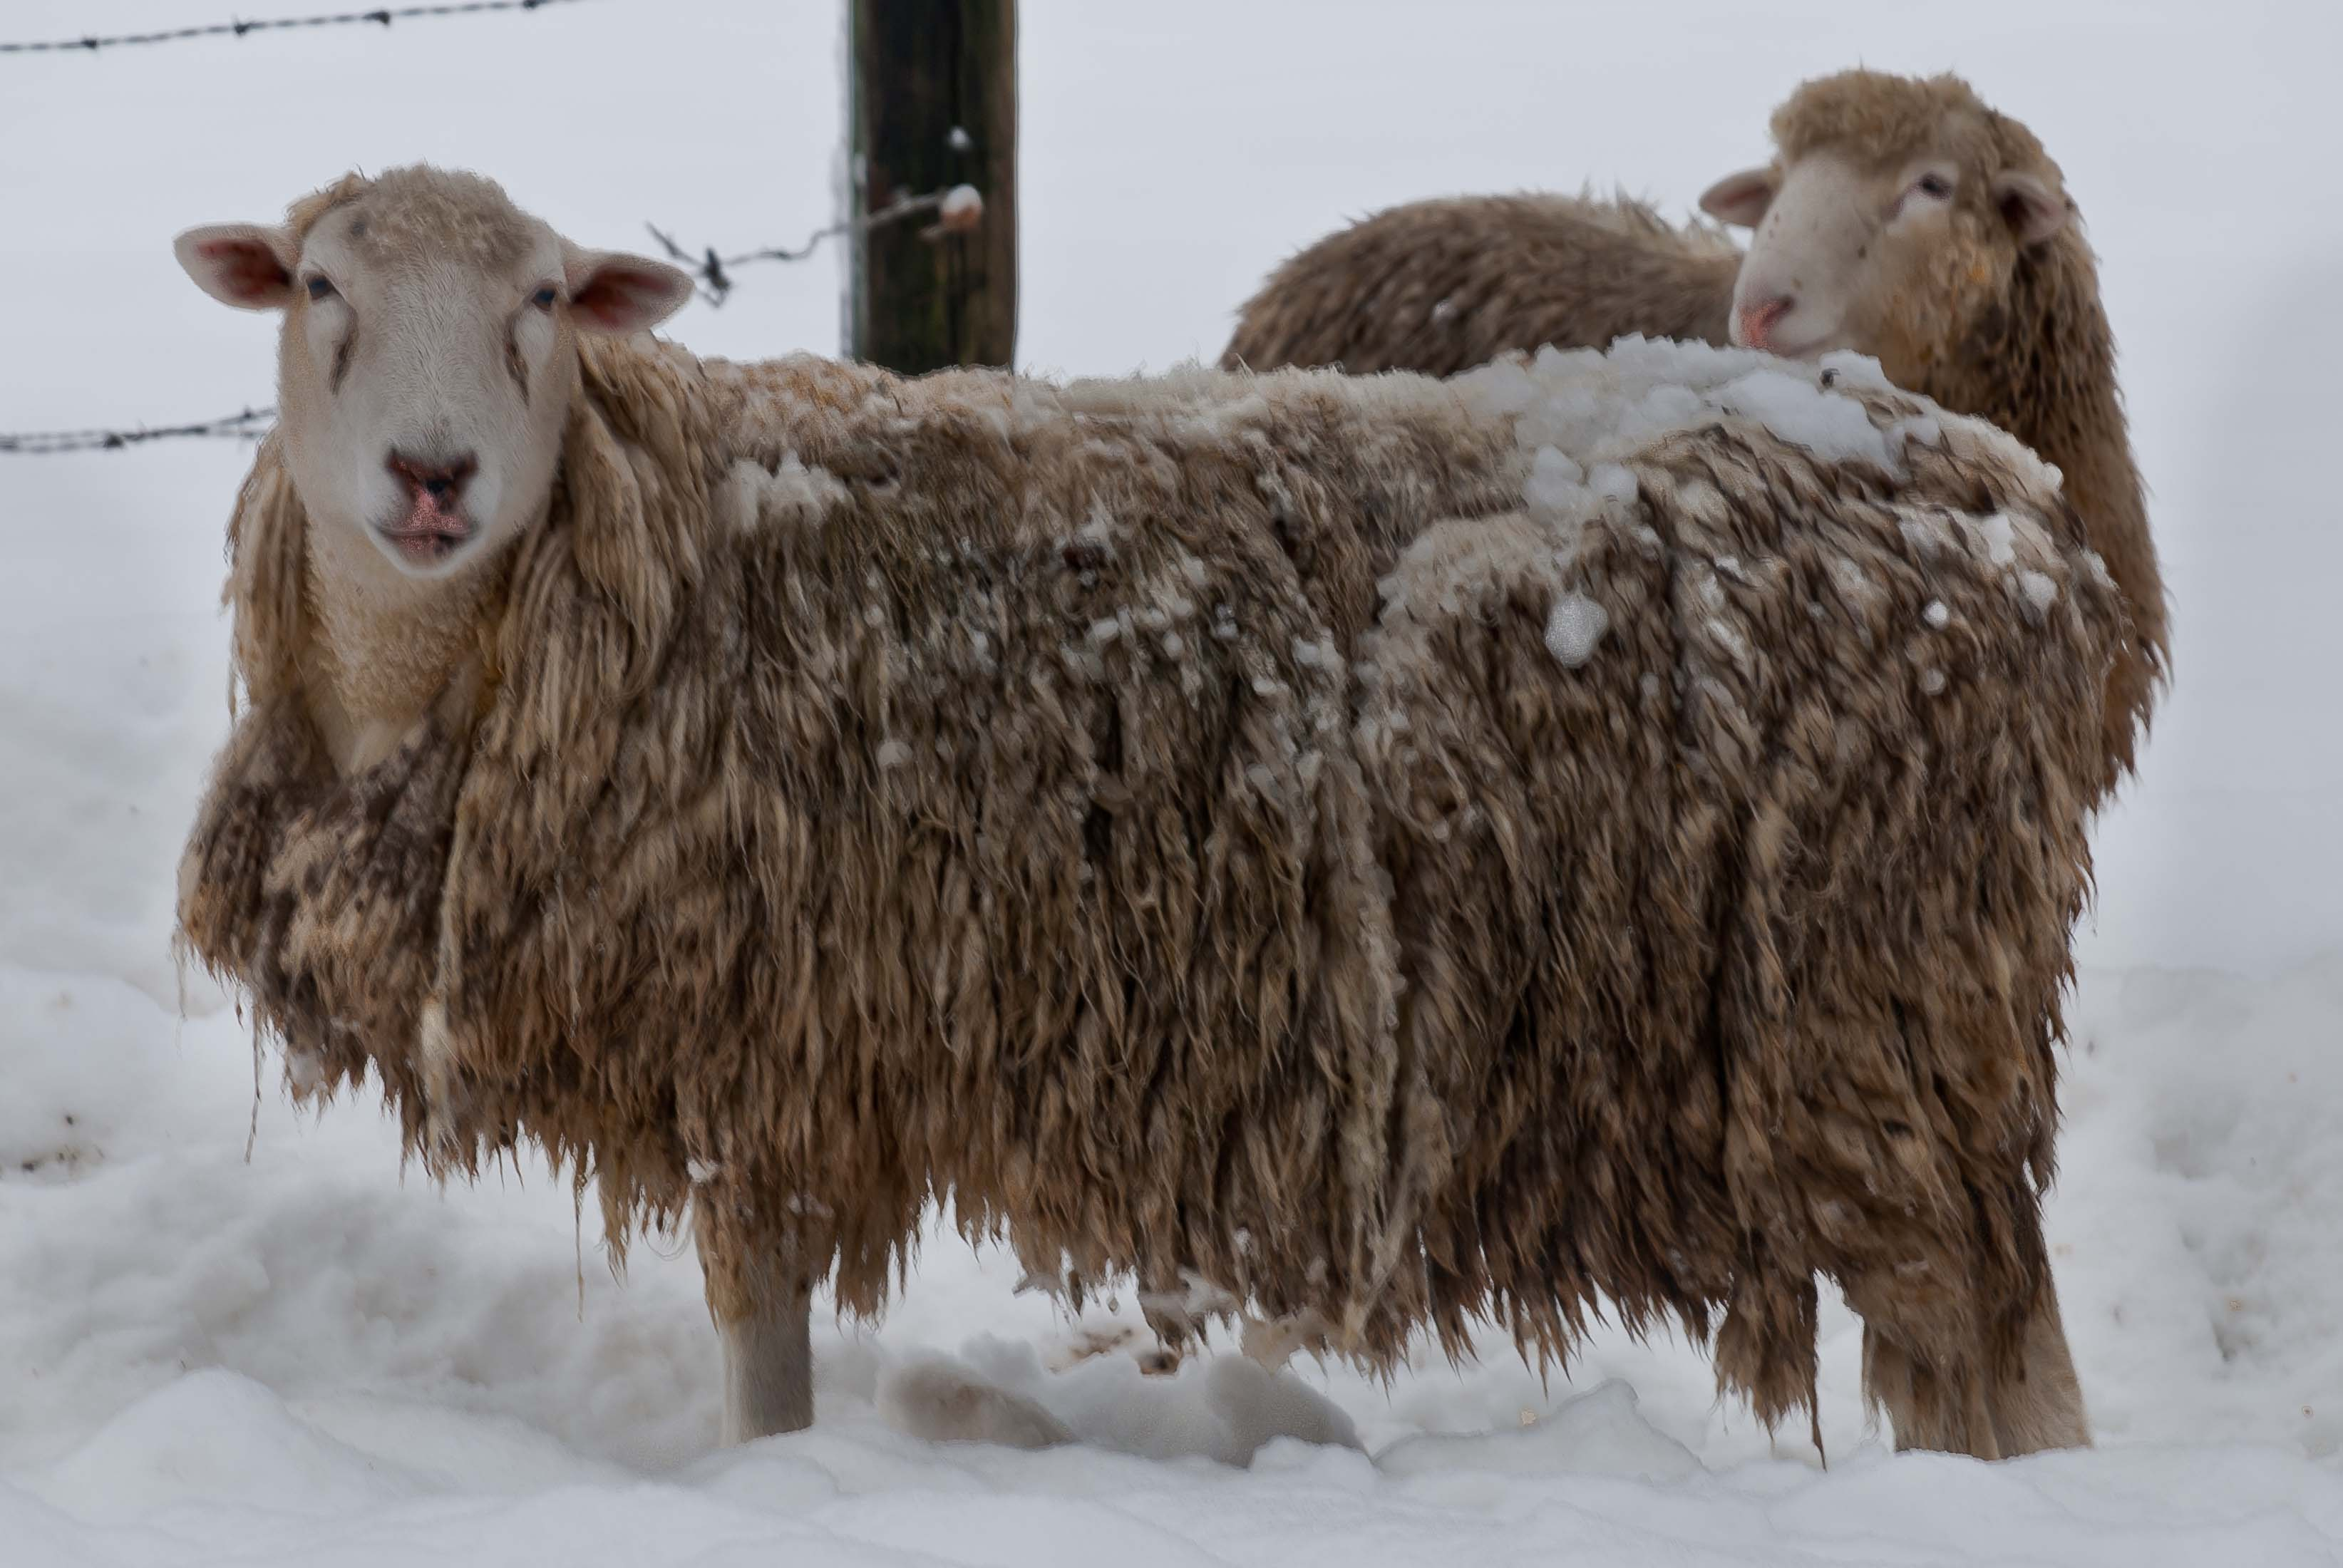 Sheep_in-winter_0561